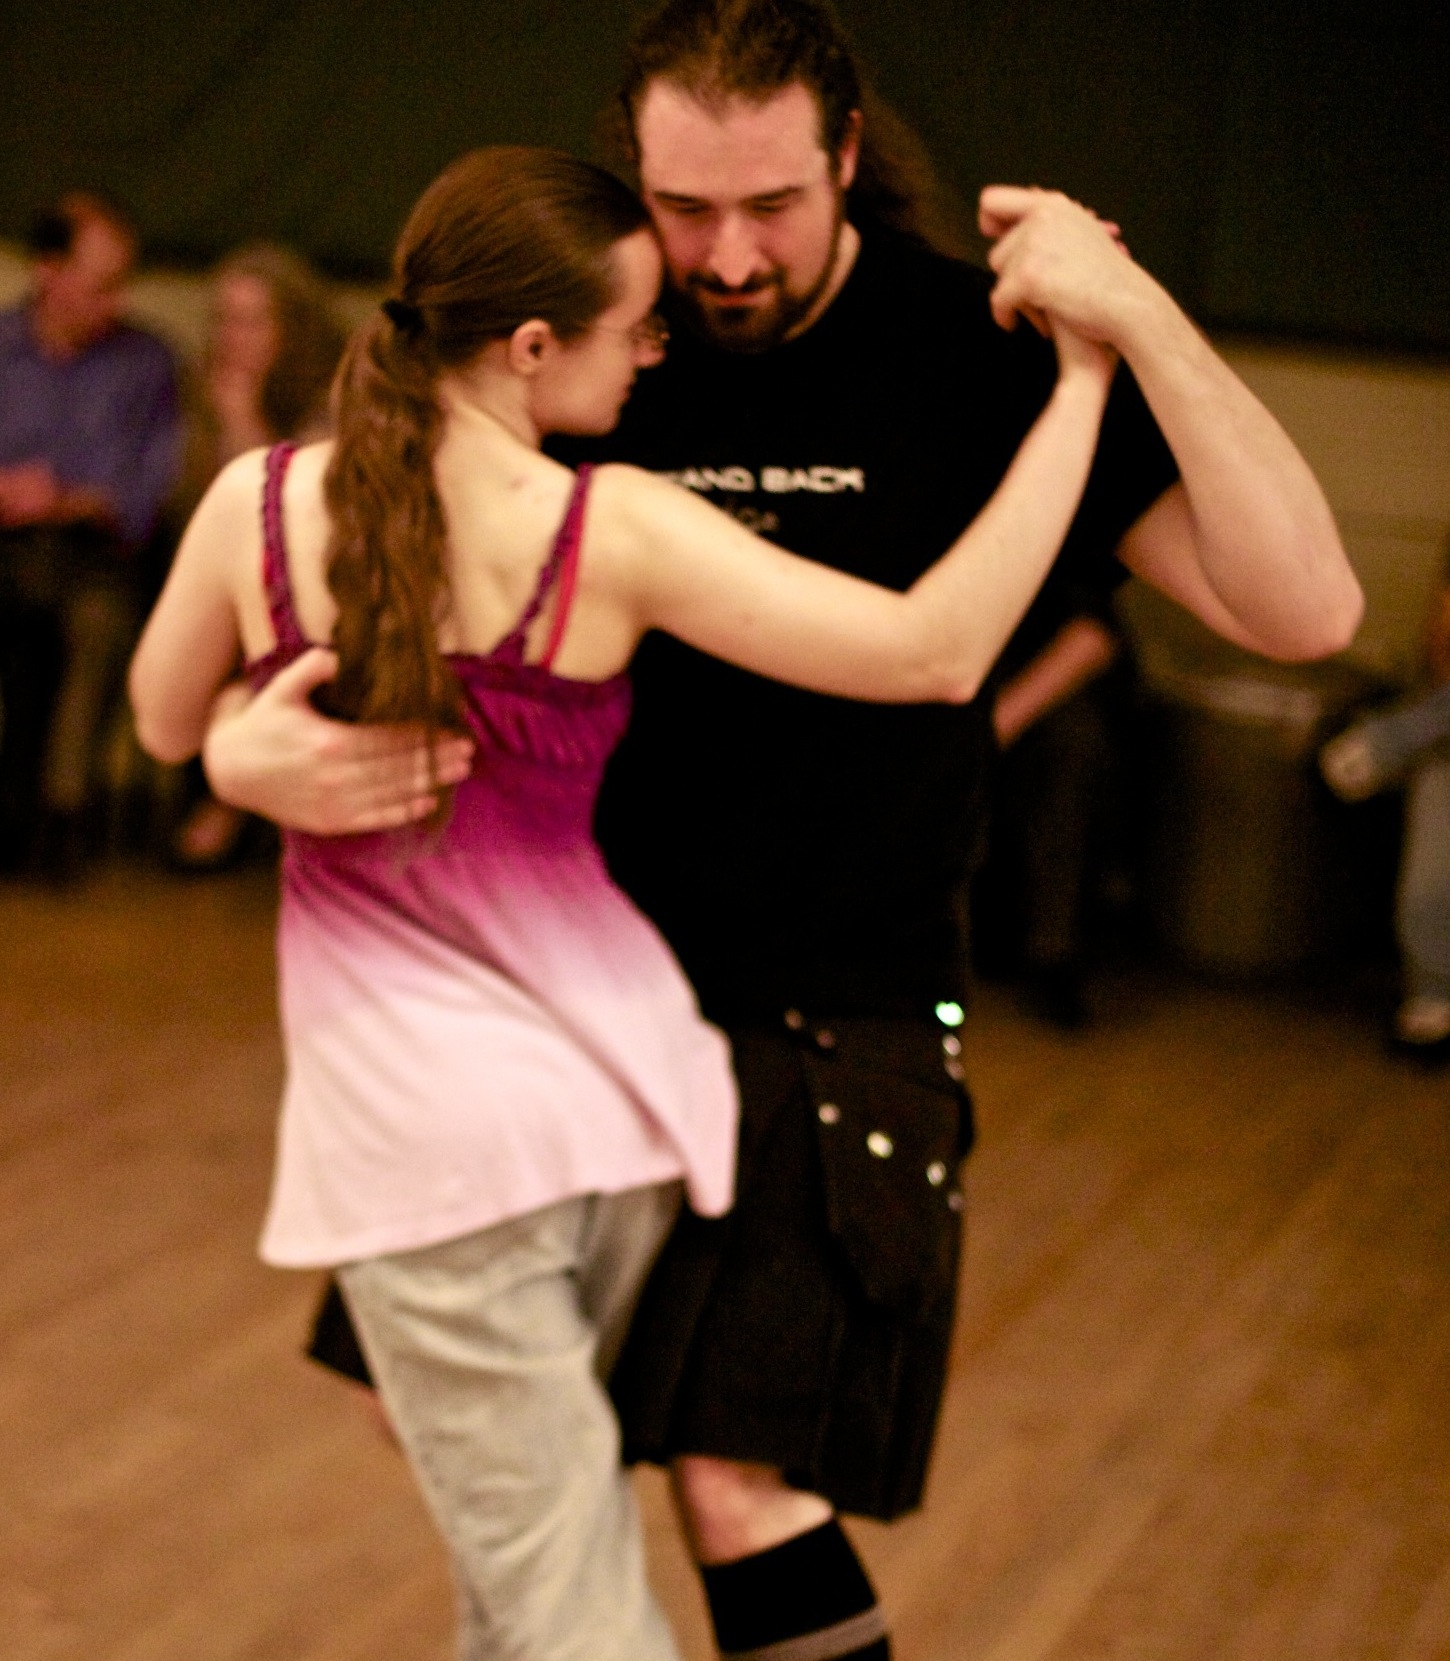 A smaller, healthier me and my close friend Dash dance tango, photo from 2012